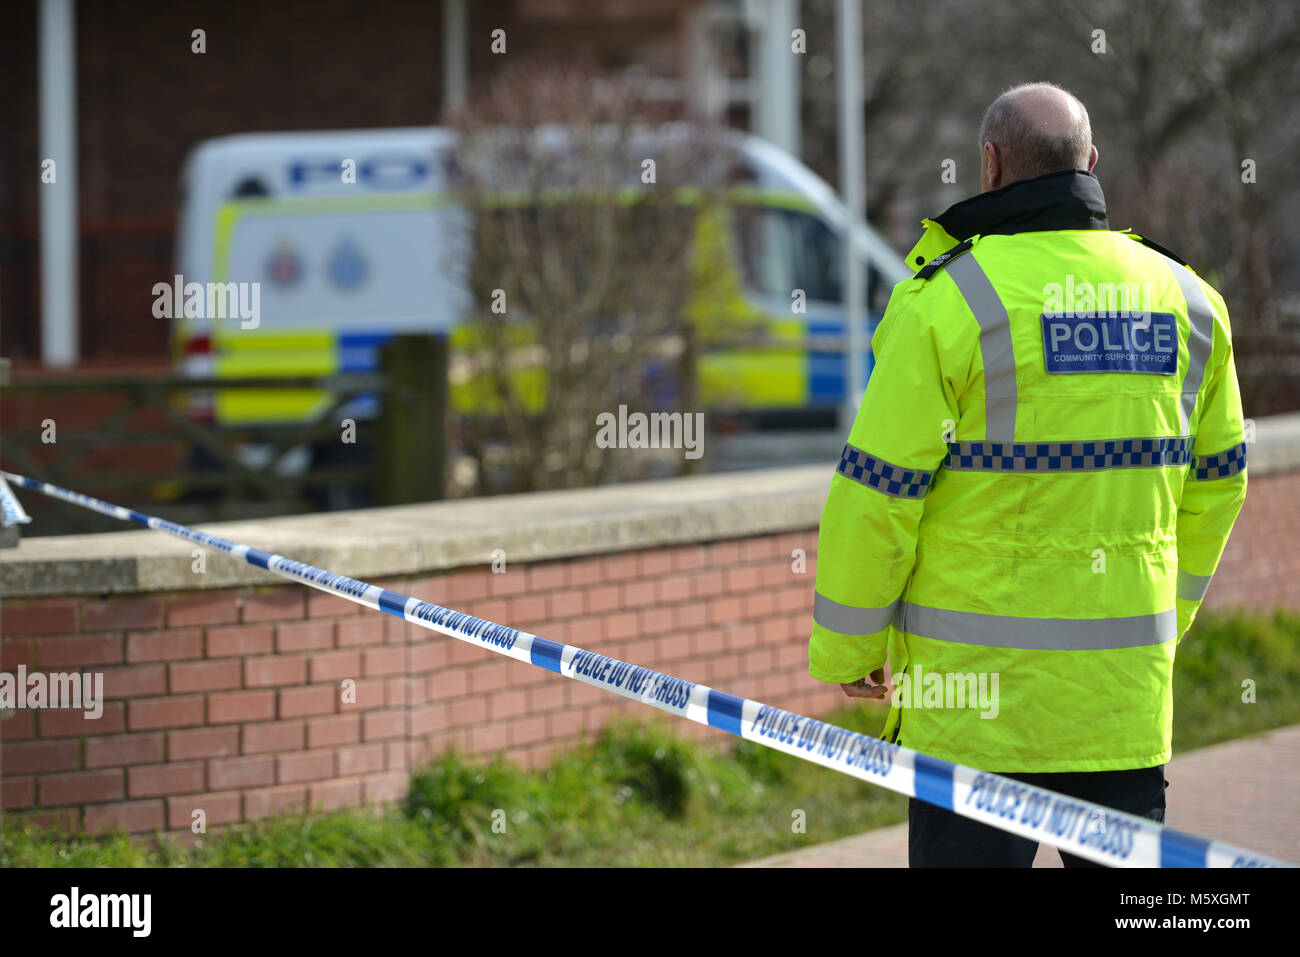 Police Community Support Officer at the scene of a crime. - Stock Image